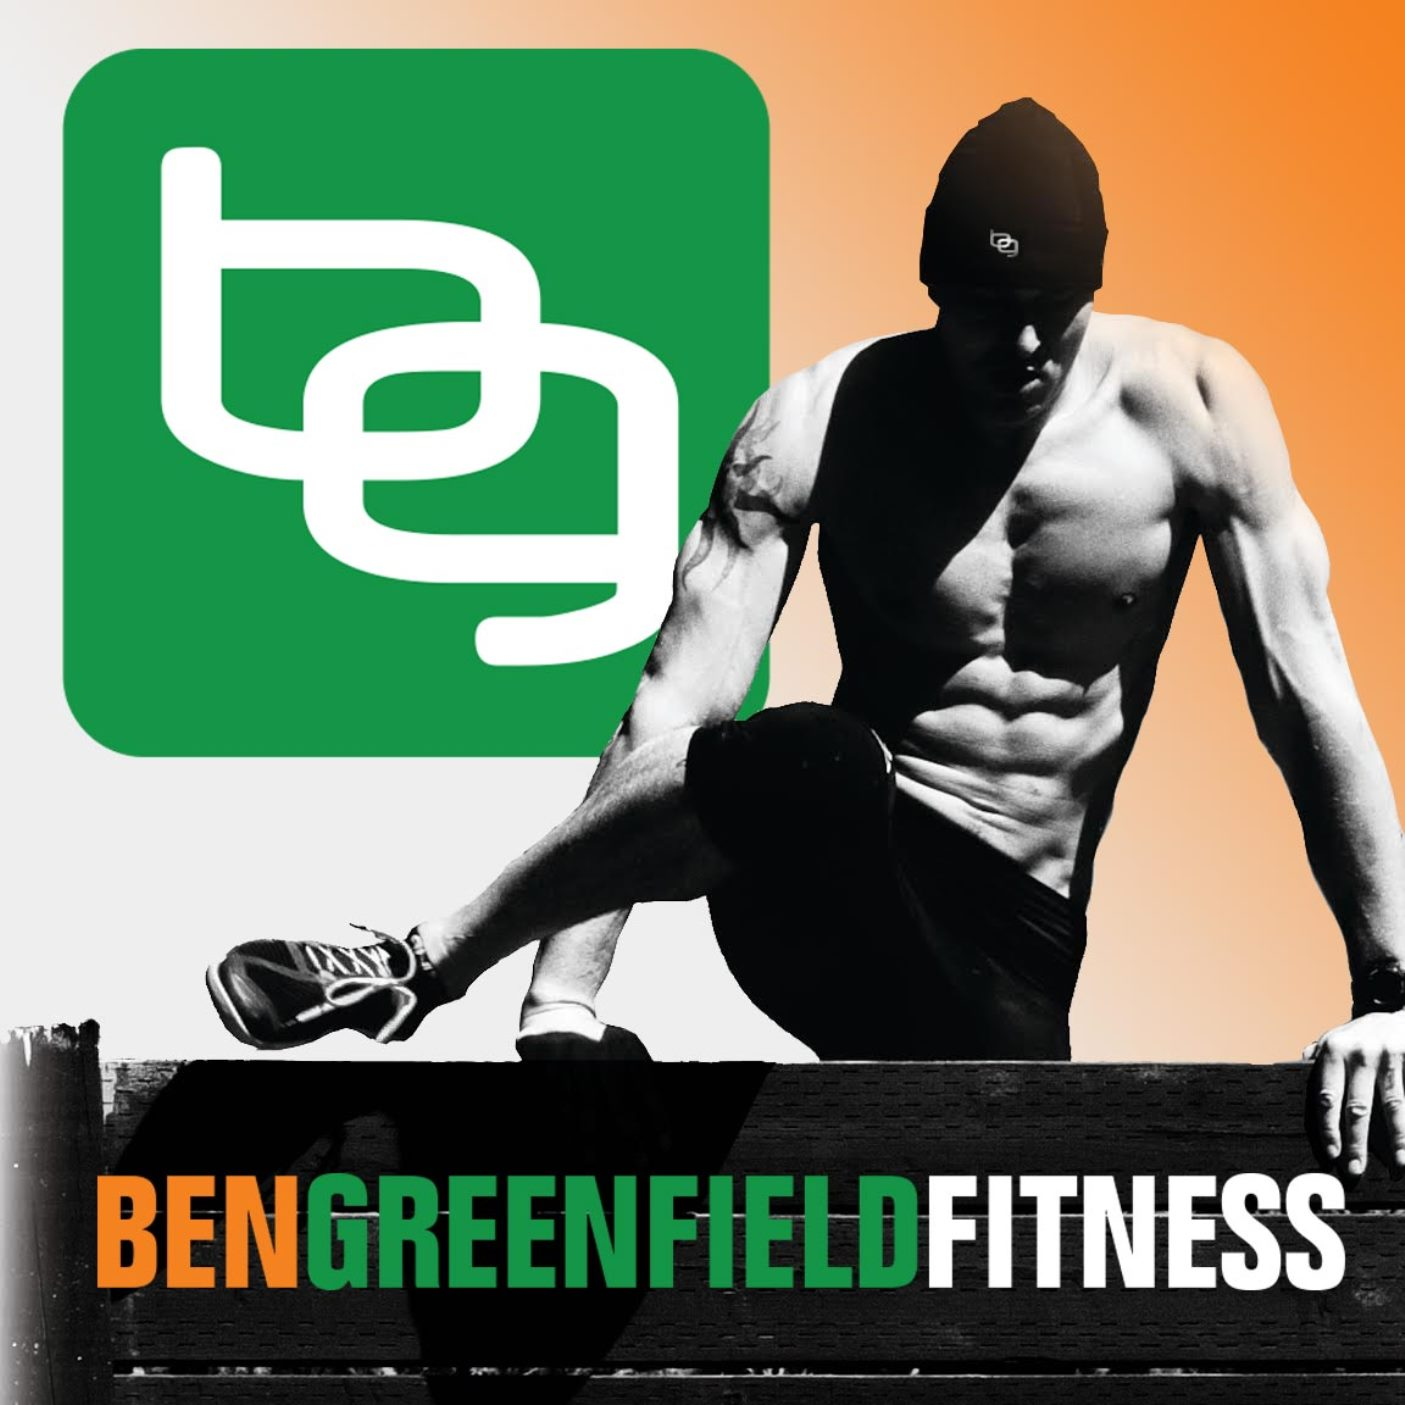 Ben Greenfield Fitness: Fitness, Fat Loss and Performance advice